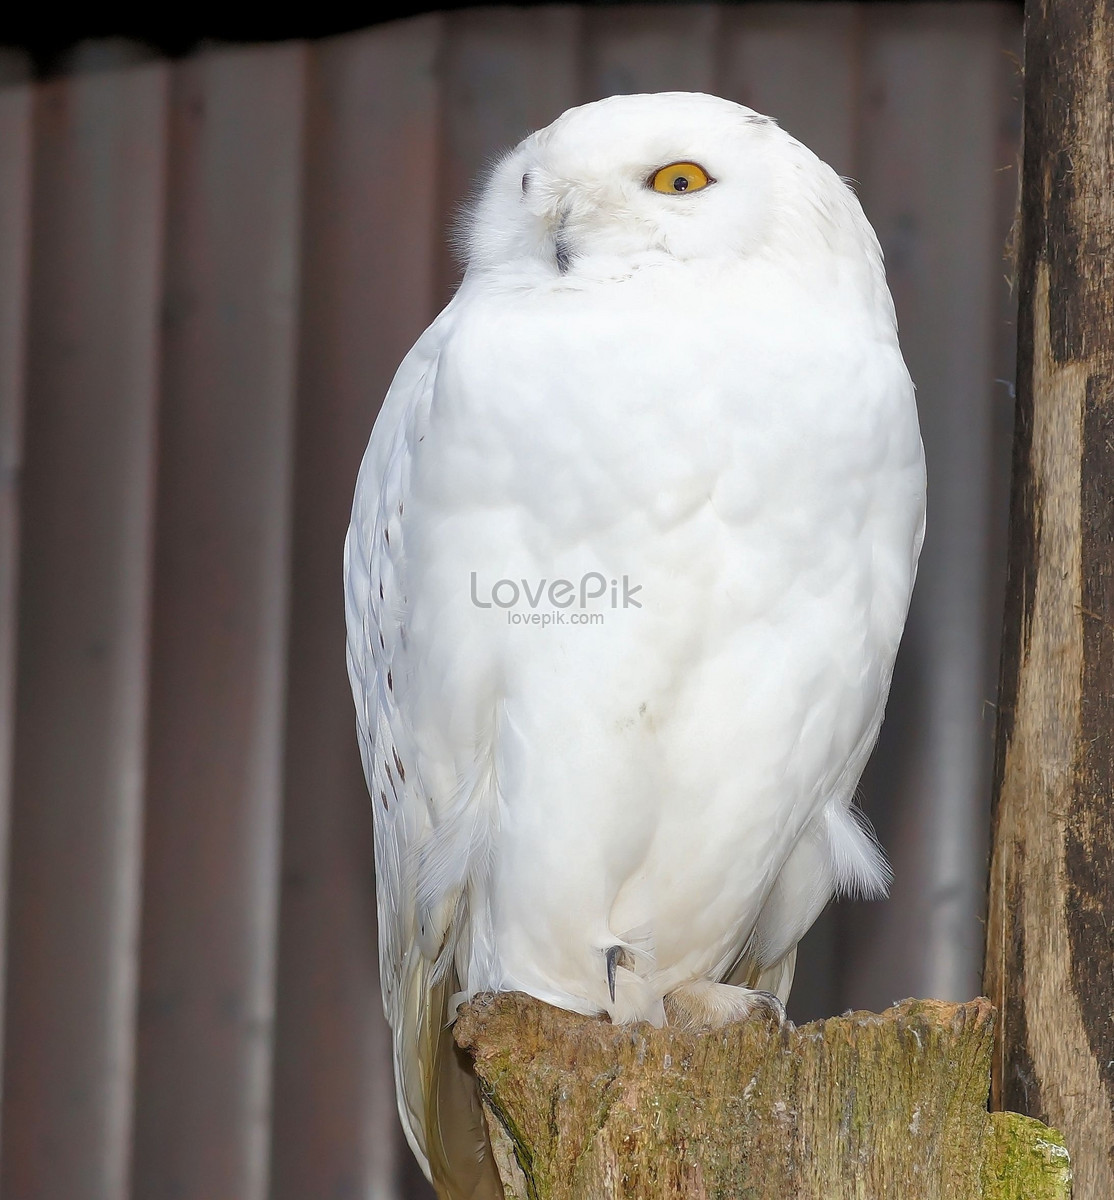 snowy owl photo image picture free download 406506